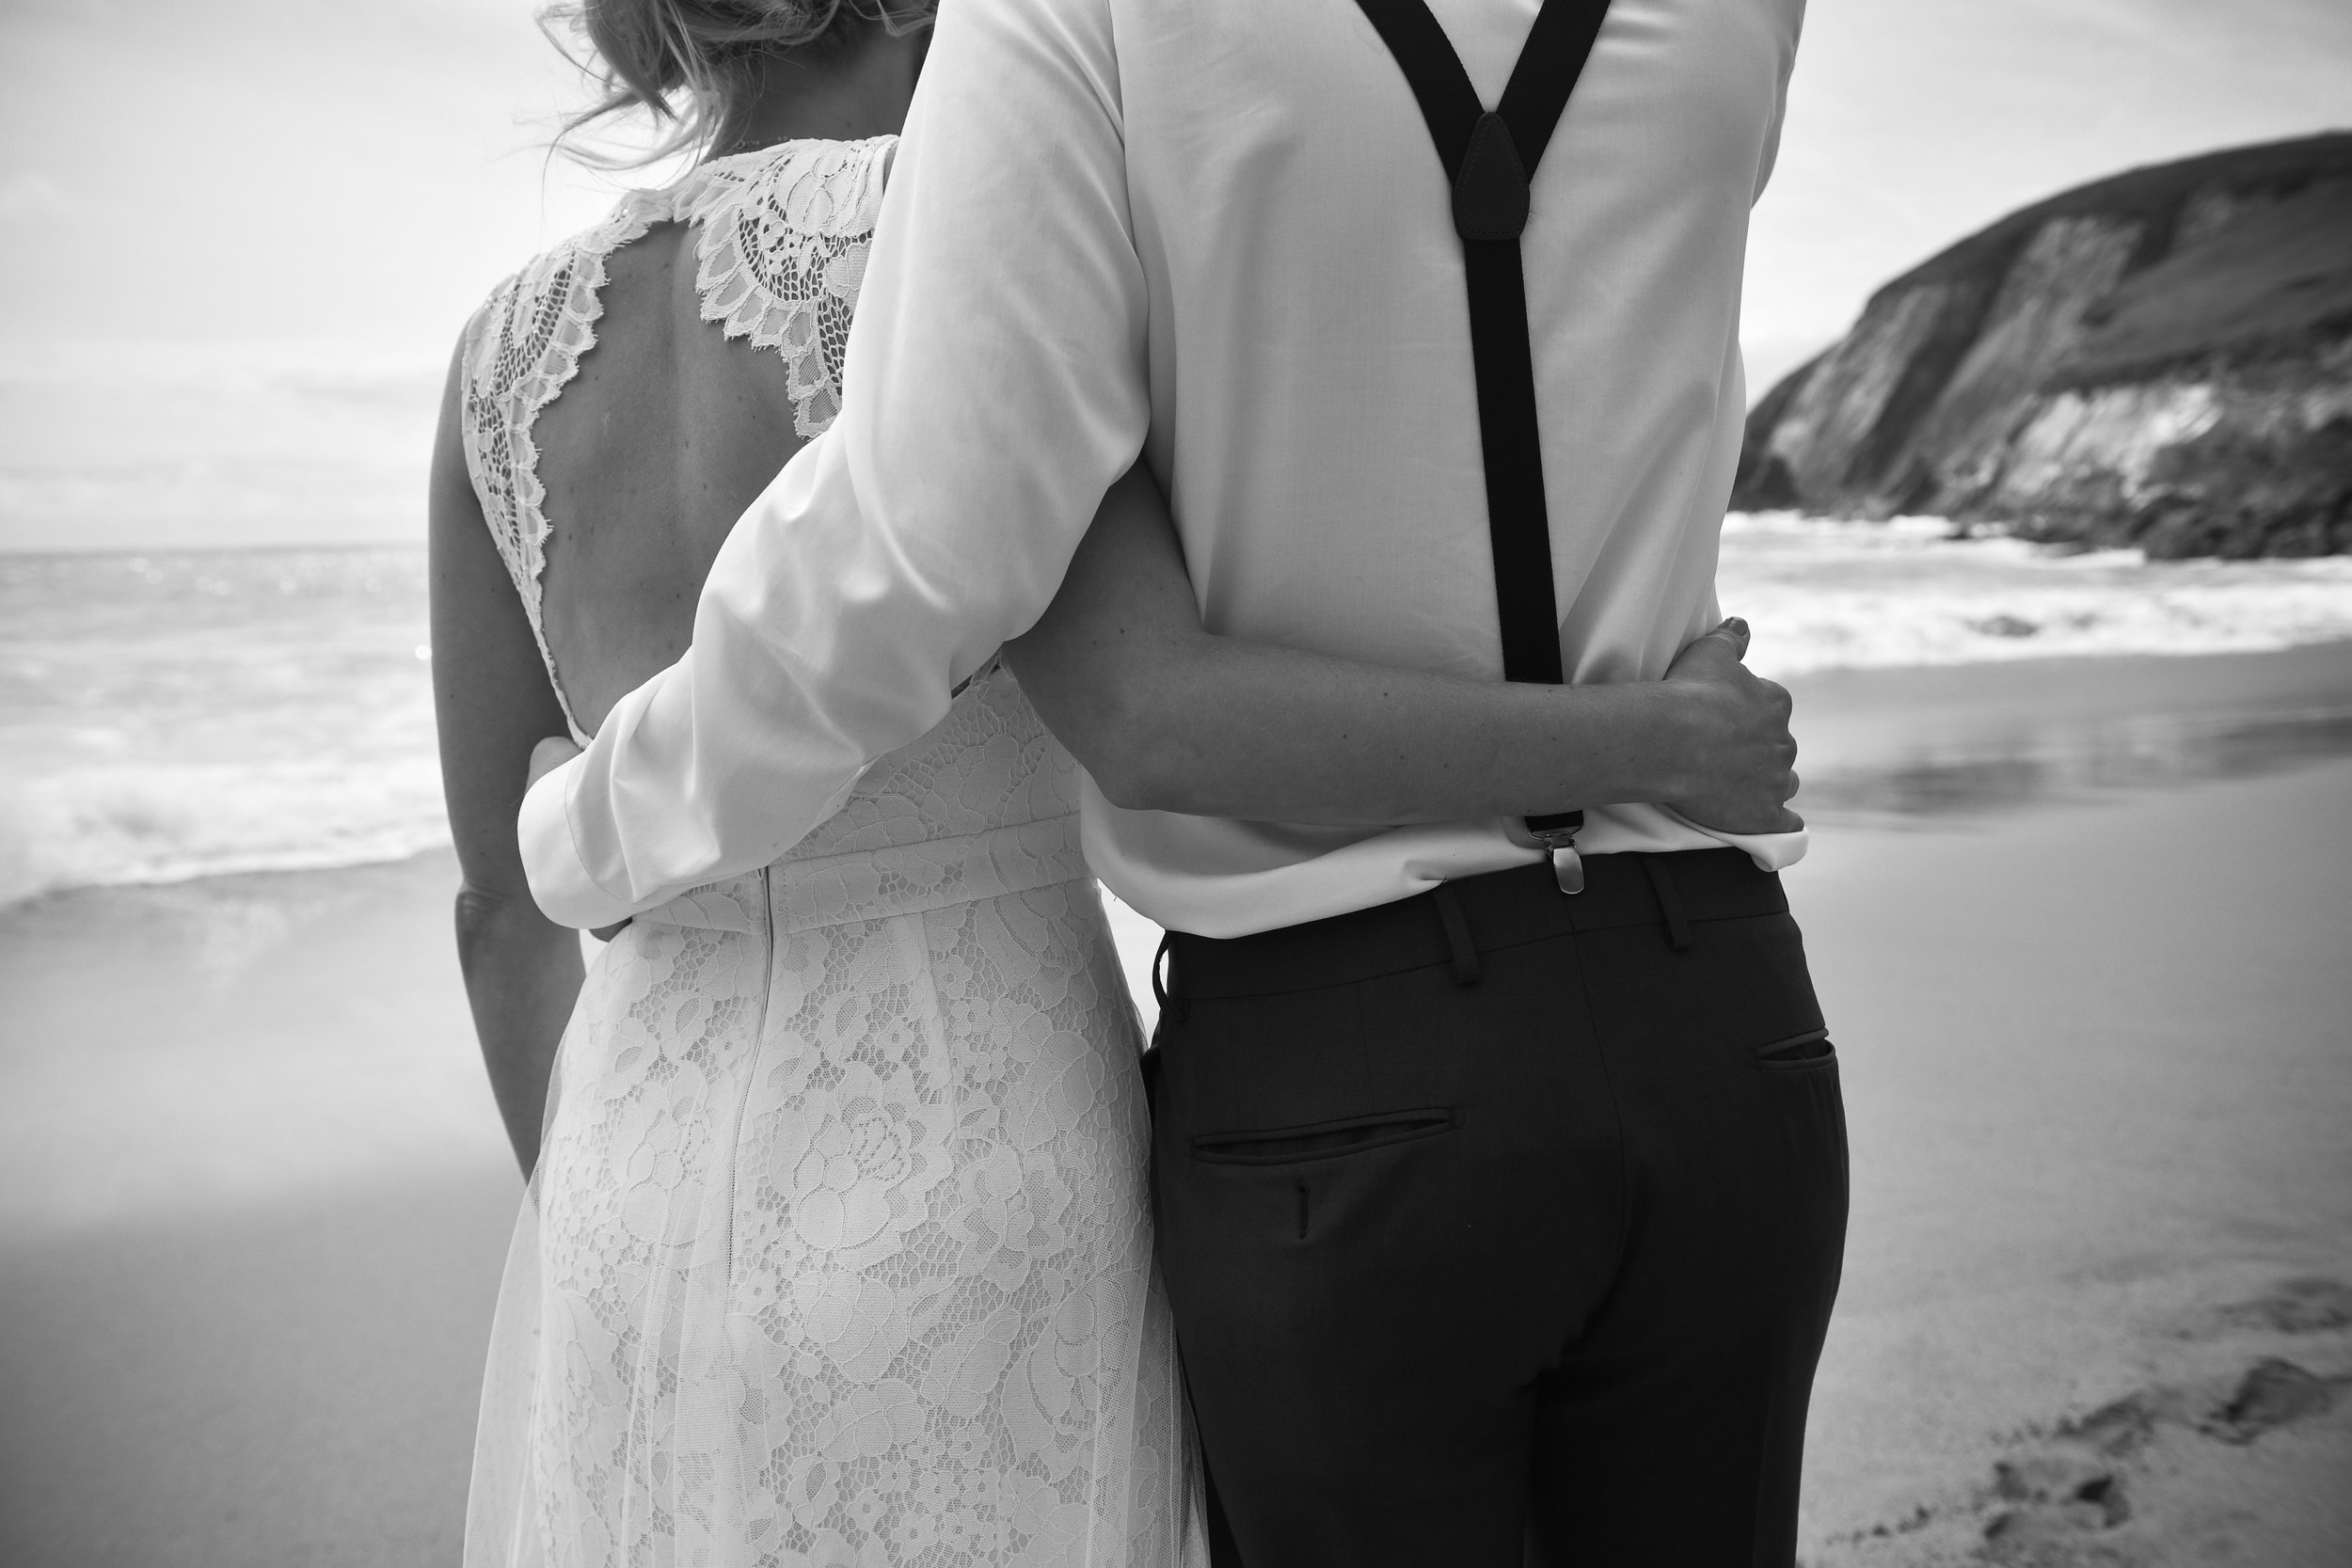 coumenole beach wedding dingle co kerry ireland beach weddings dingle elaine kennedy photography.jpg